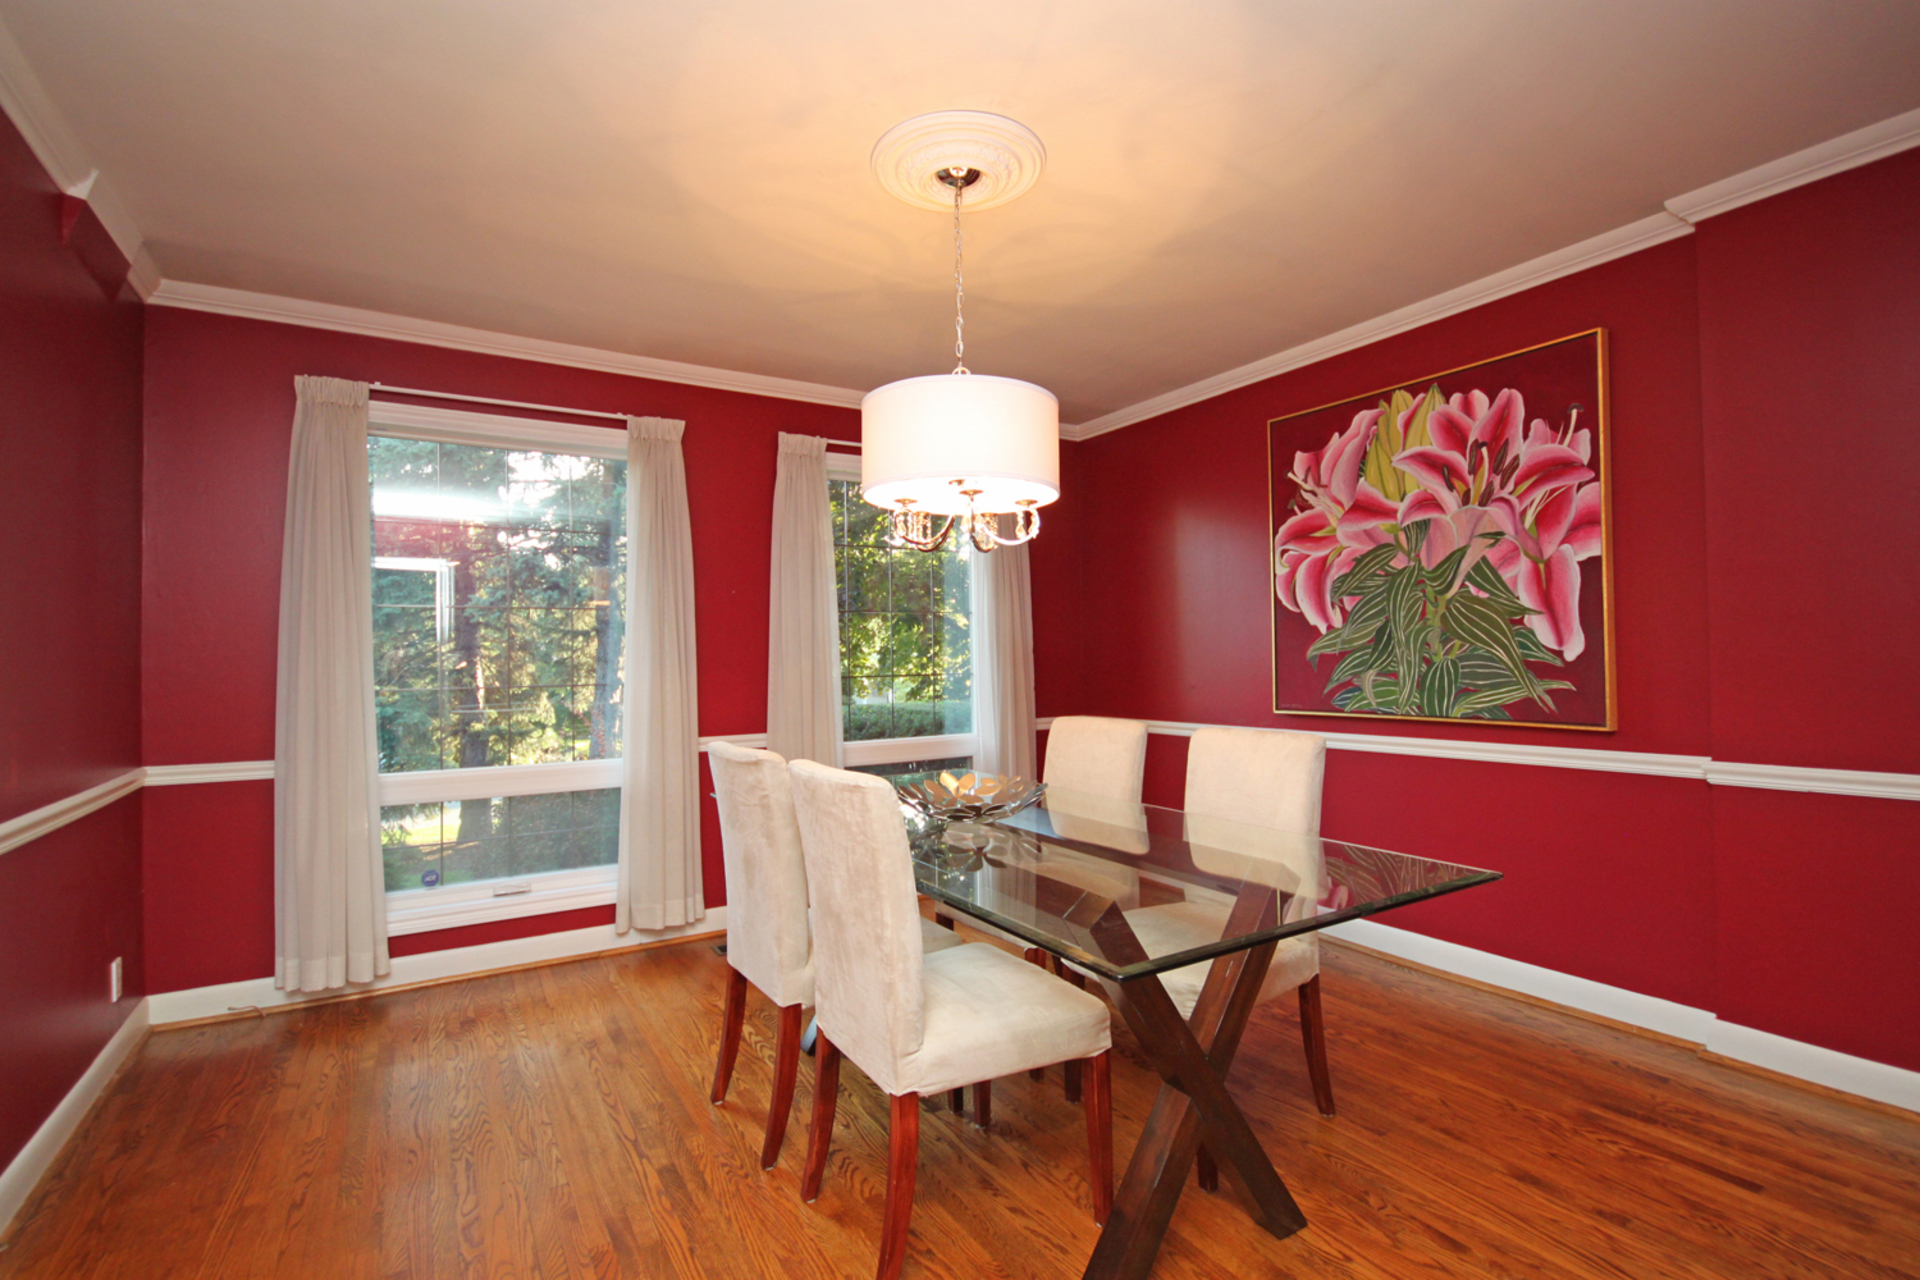 Dining Room at 5 Belton Road, Banbury-Don Mills, Toronto